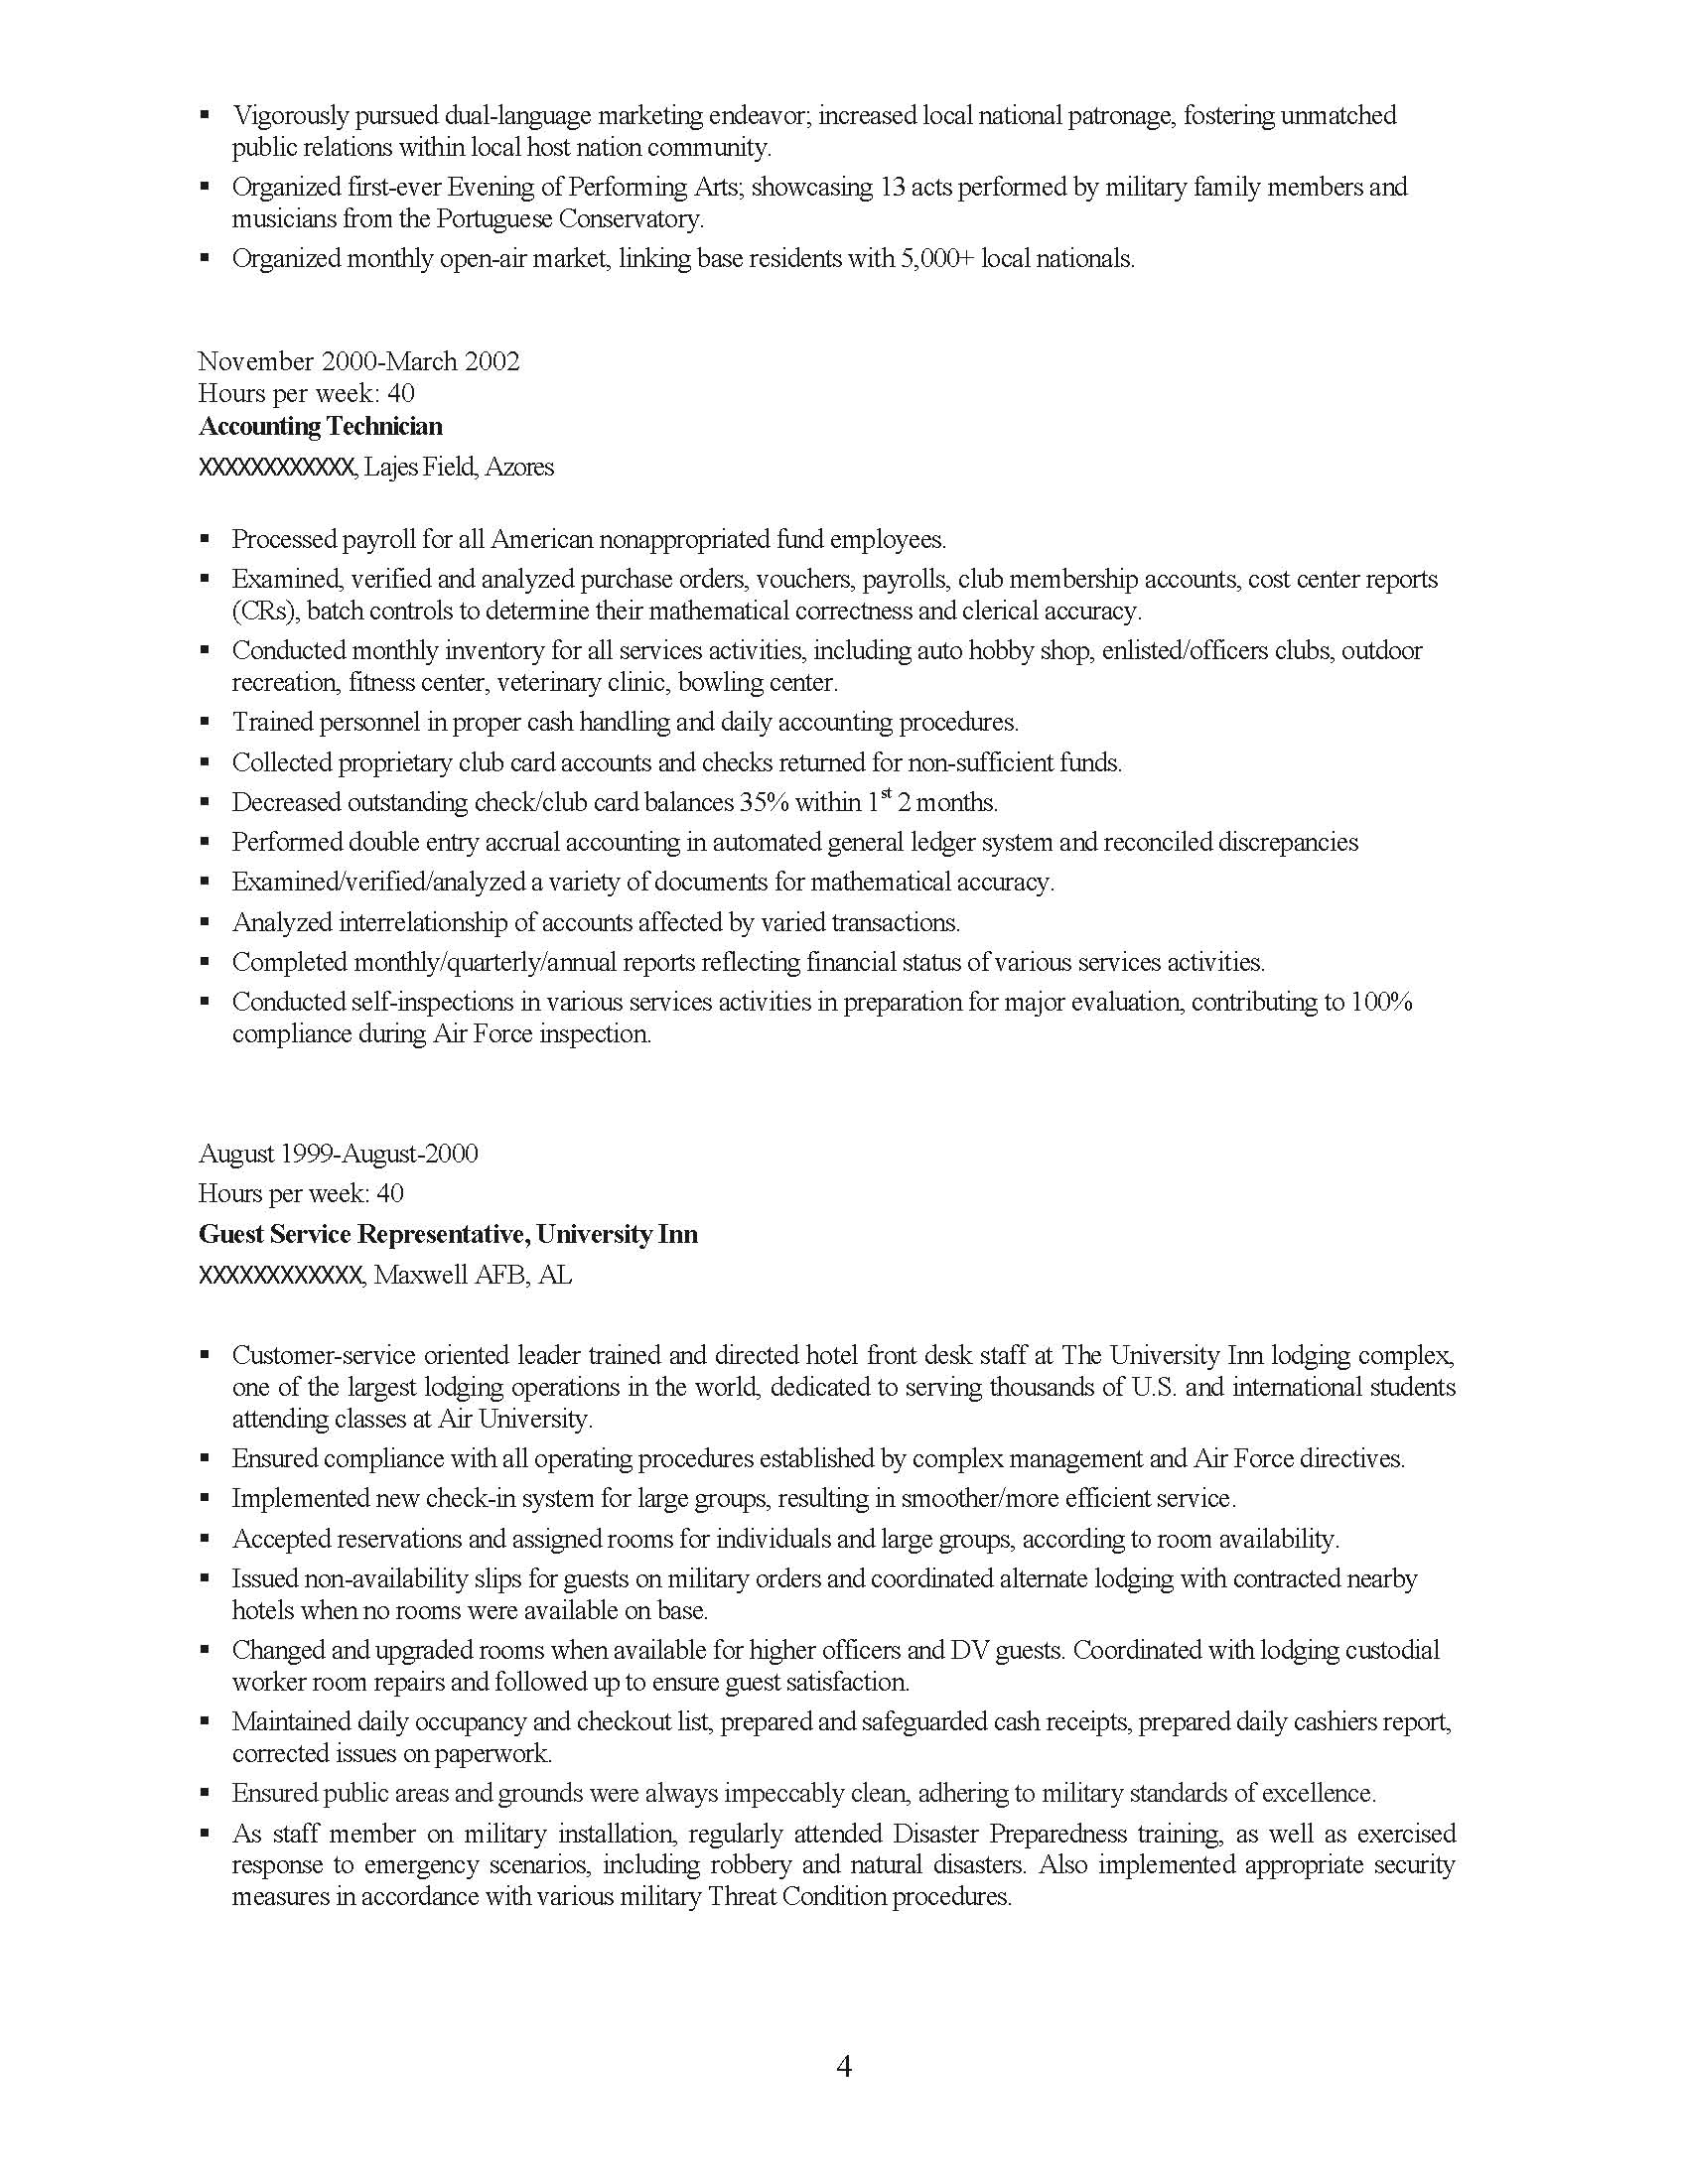 Senior Management Professional Resume Sample - Before-4